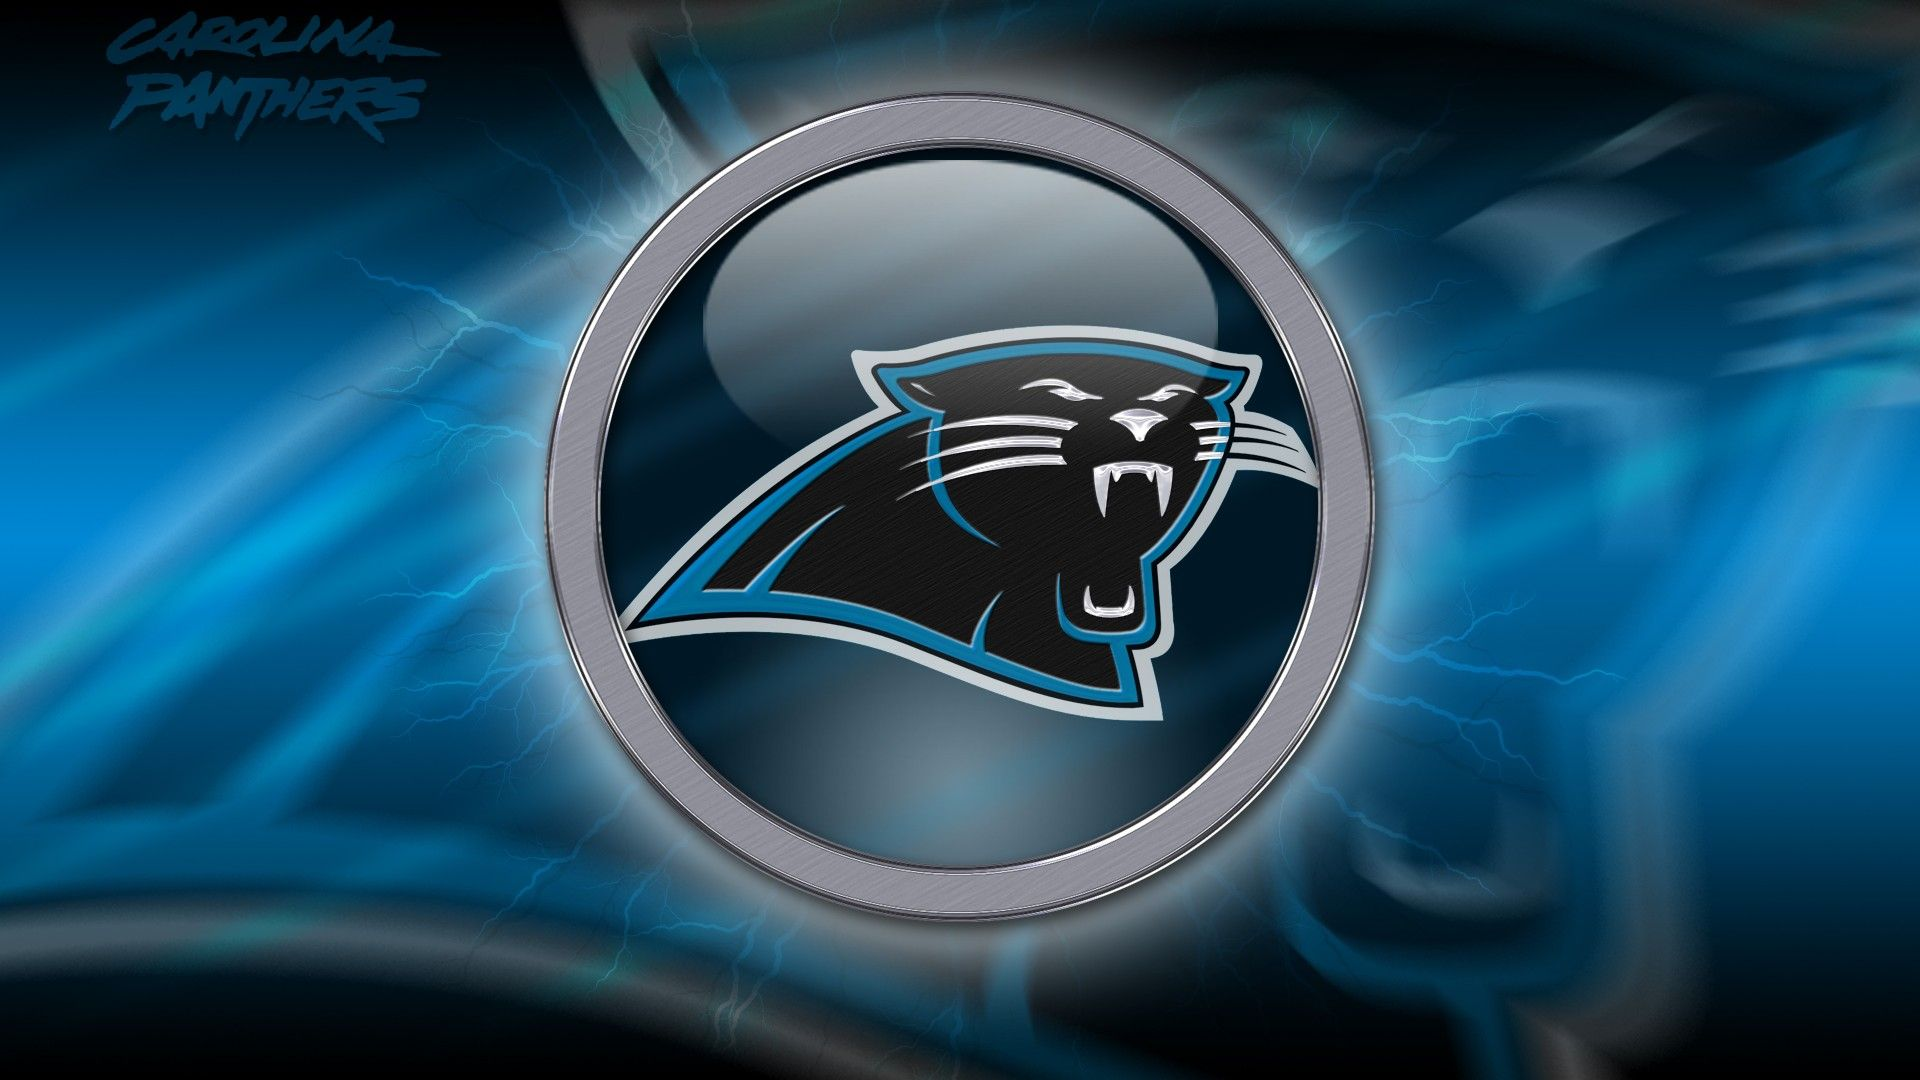 Carolina Panthers Wallpaper Wallpapers Carolina panthers 1920x1080